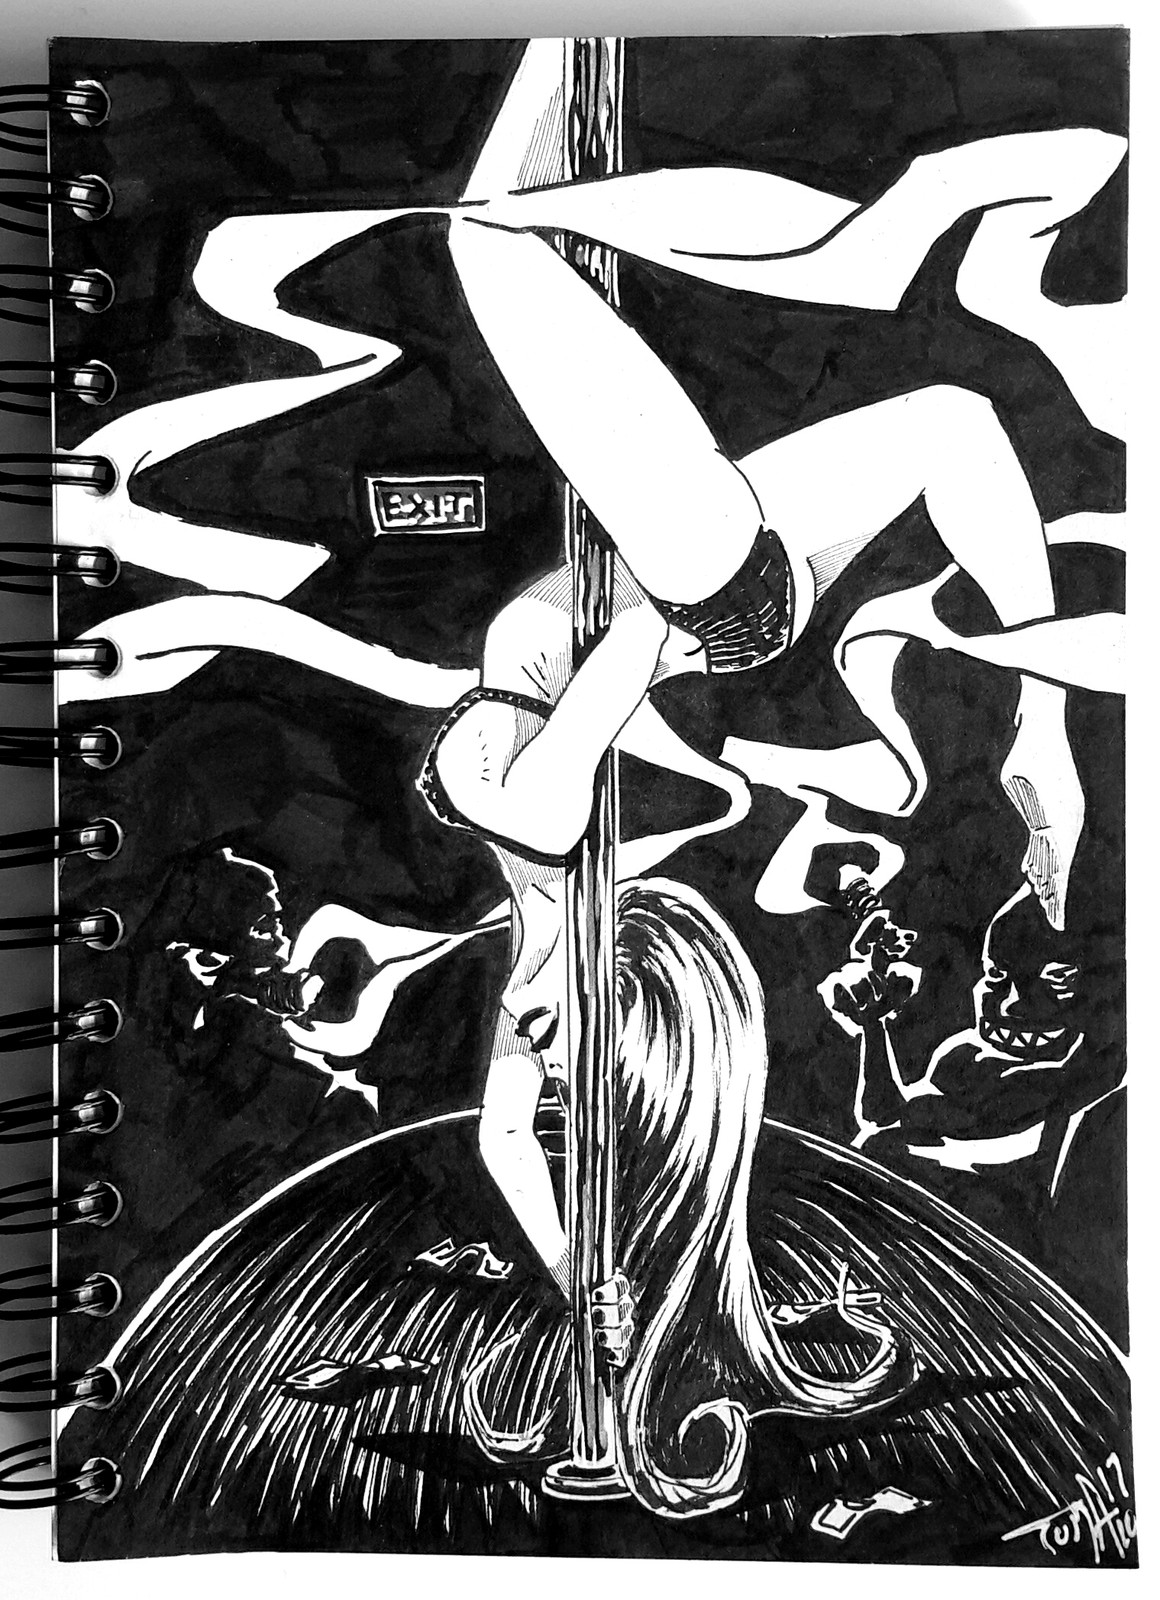 Day 17 : Graceful